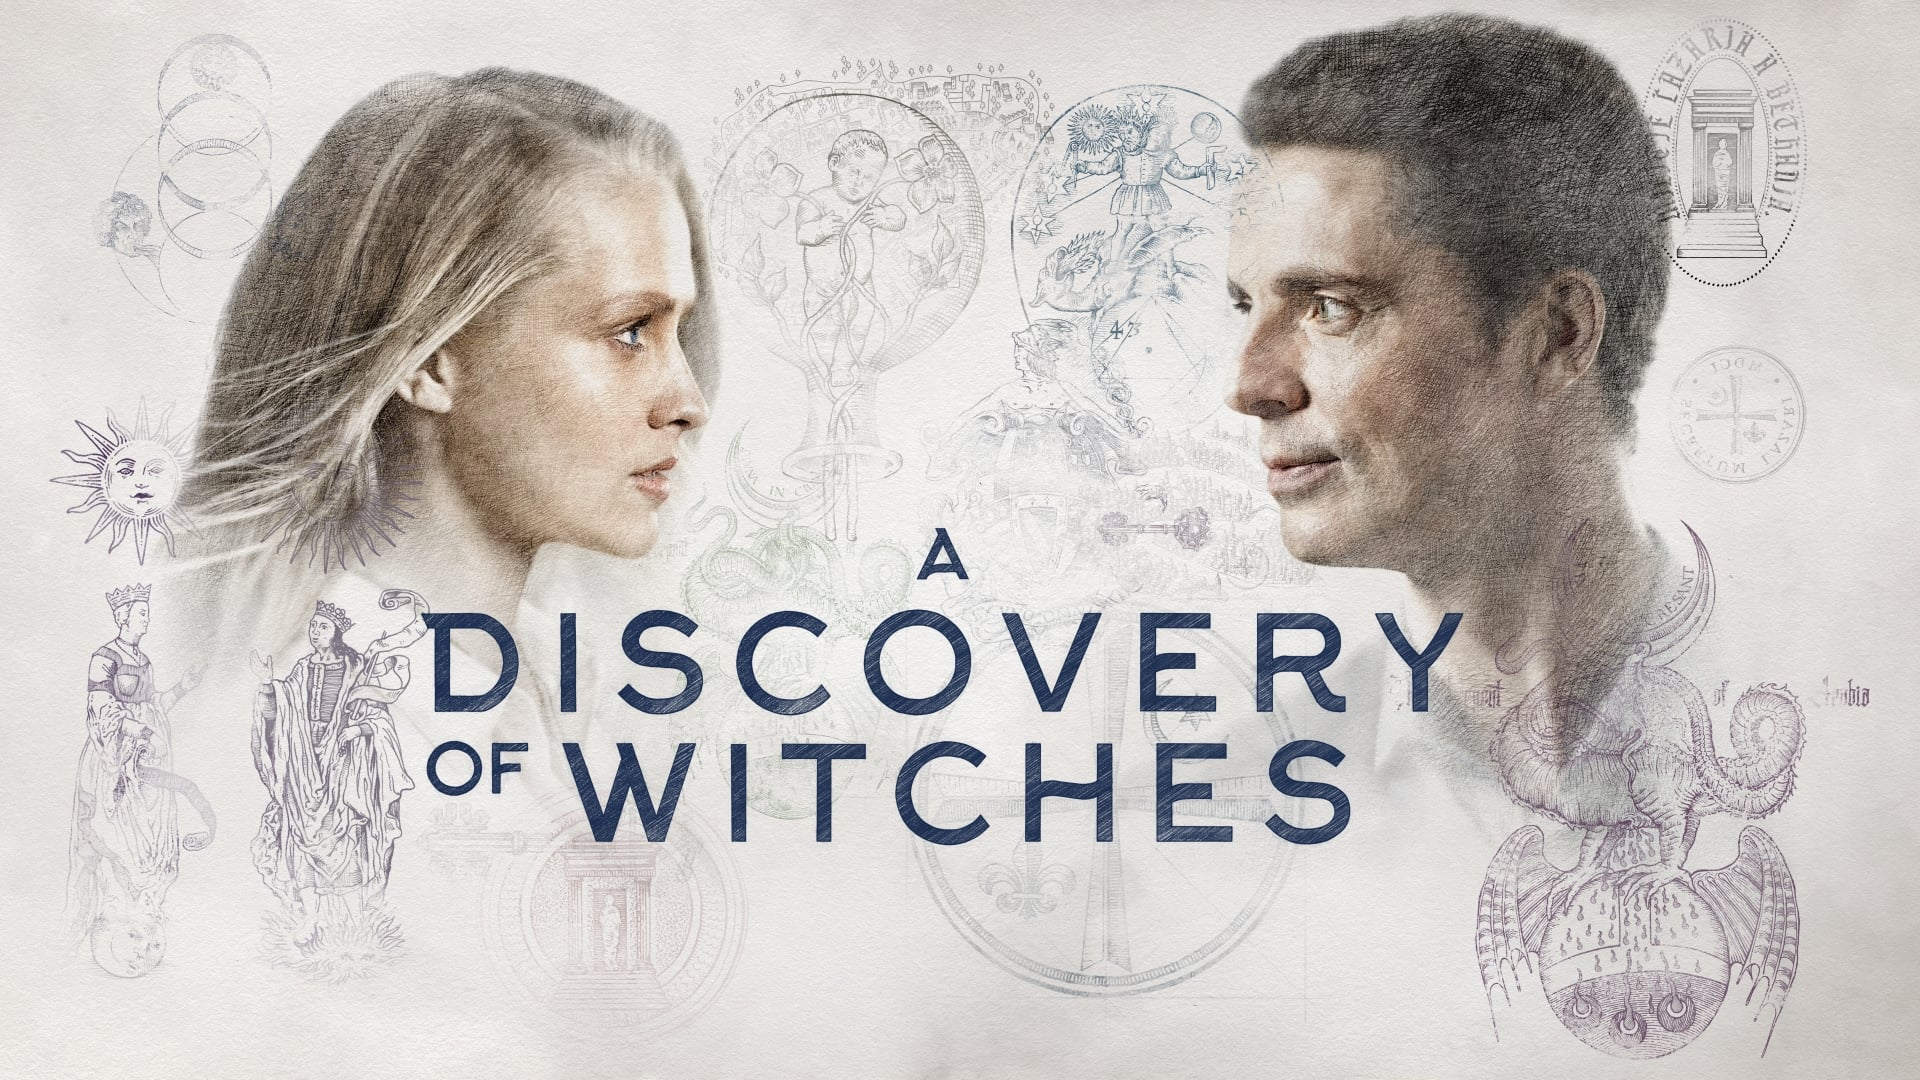 Premiere date for second season A Discovery of Witches